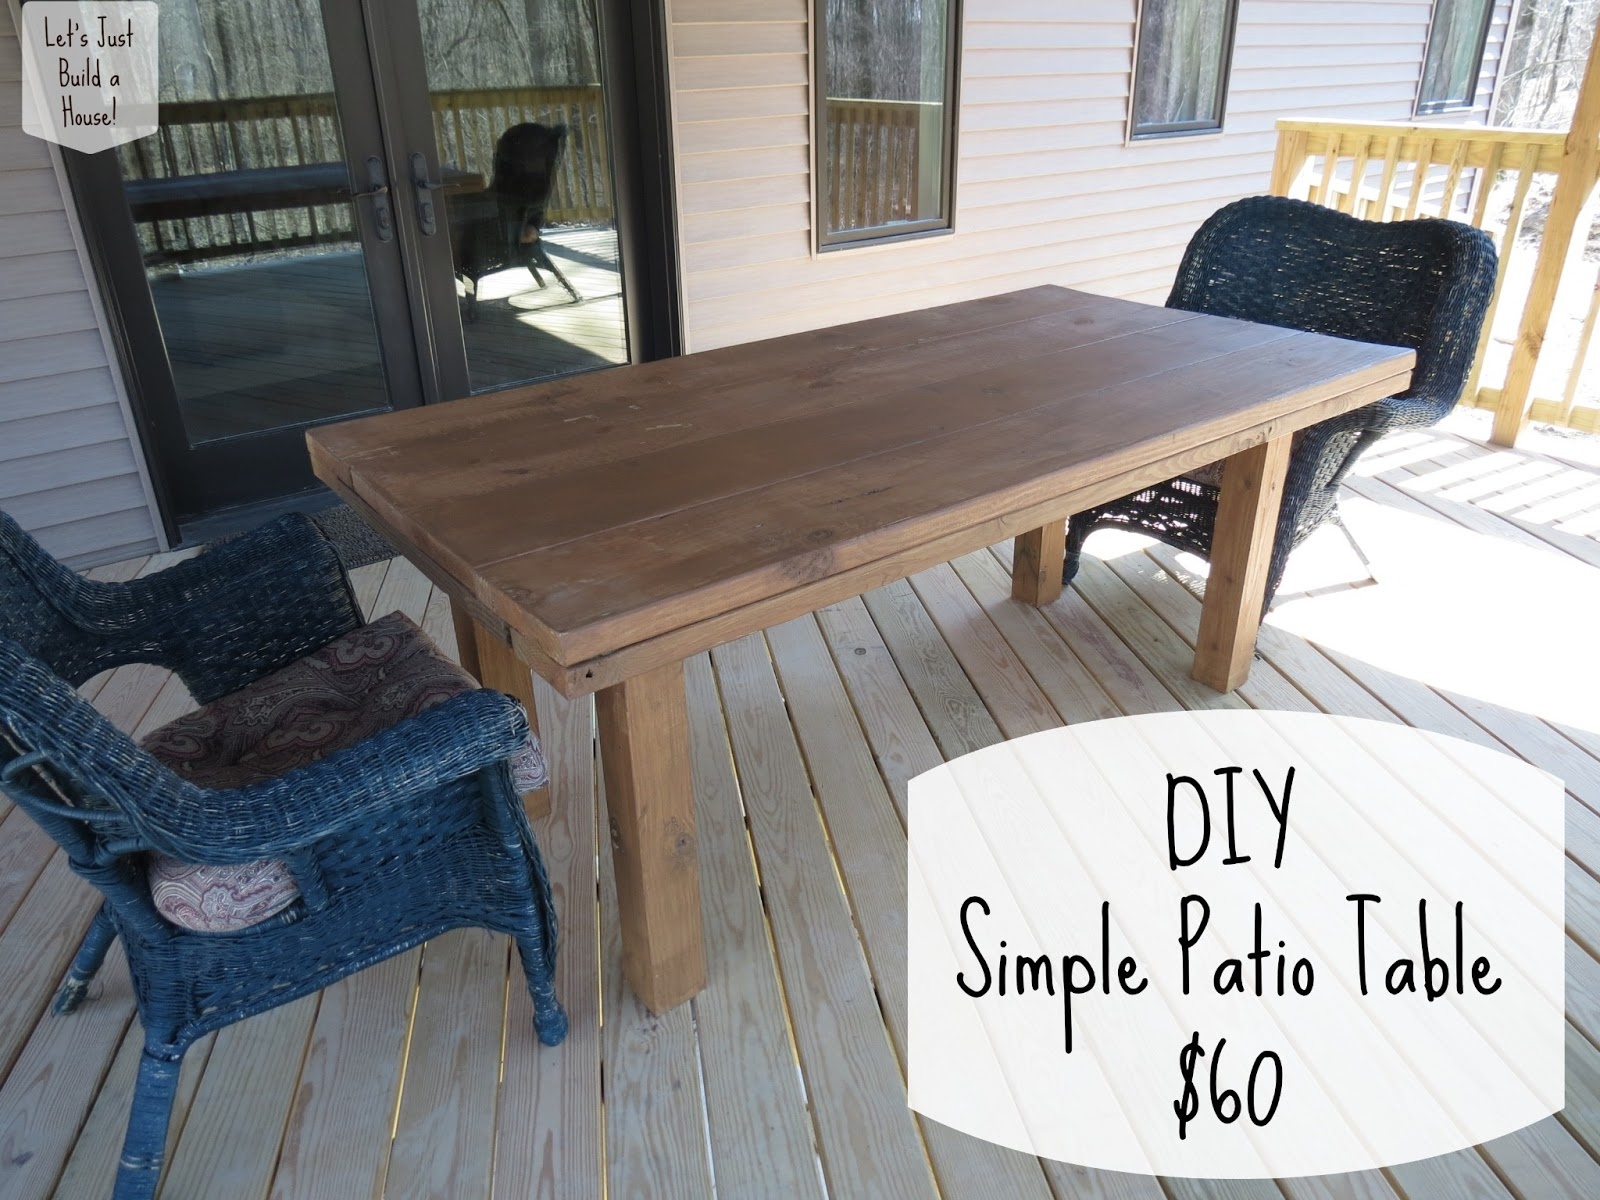 Let 39 S Just Build A House DIY Simple Patio Table Details